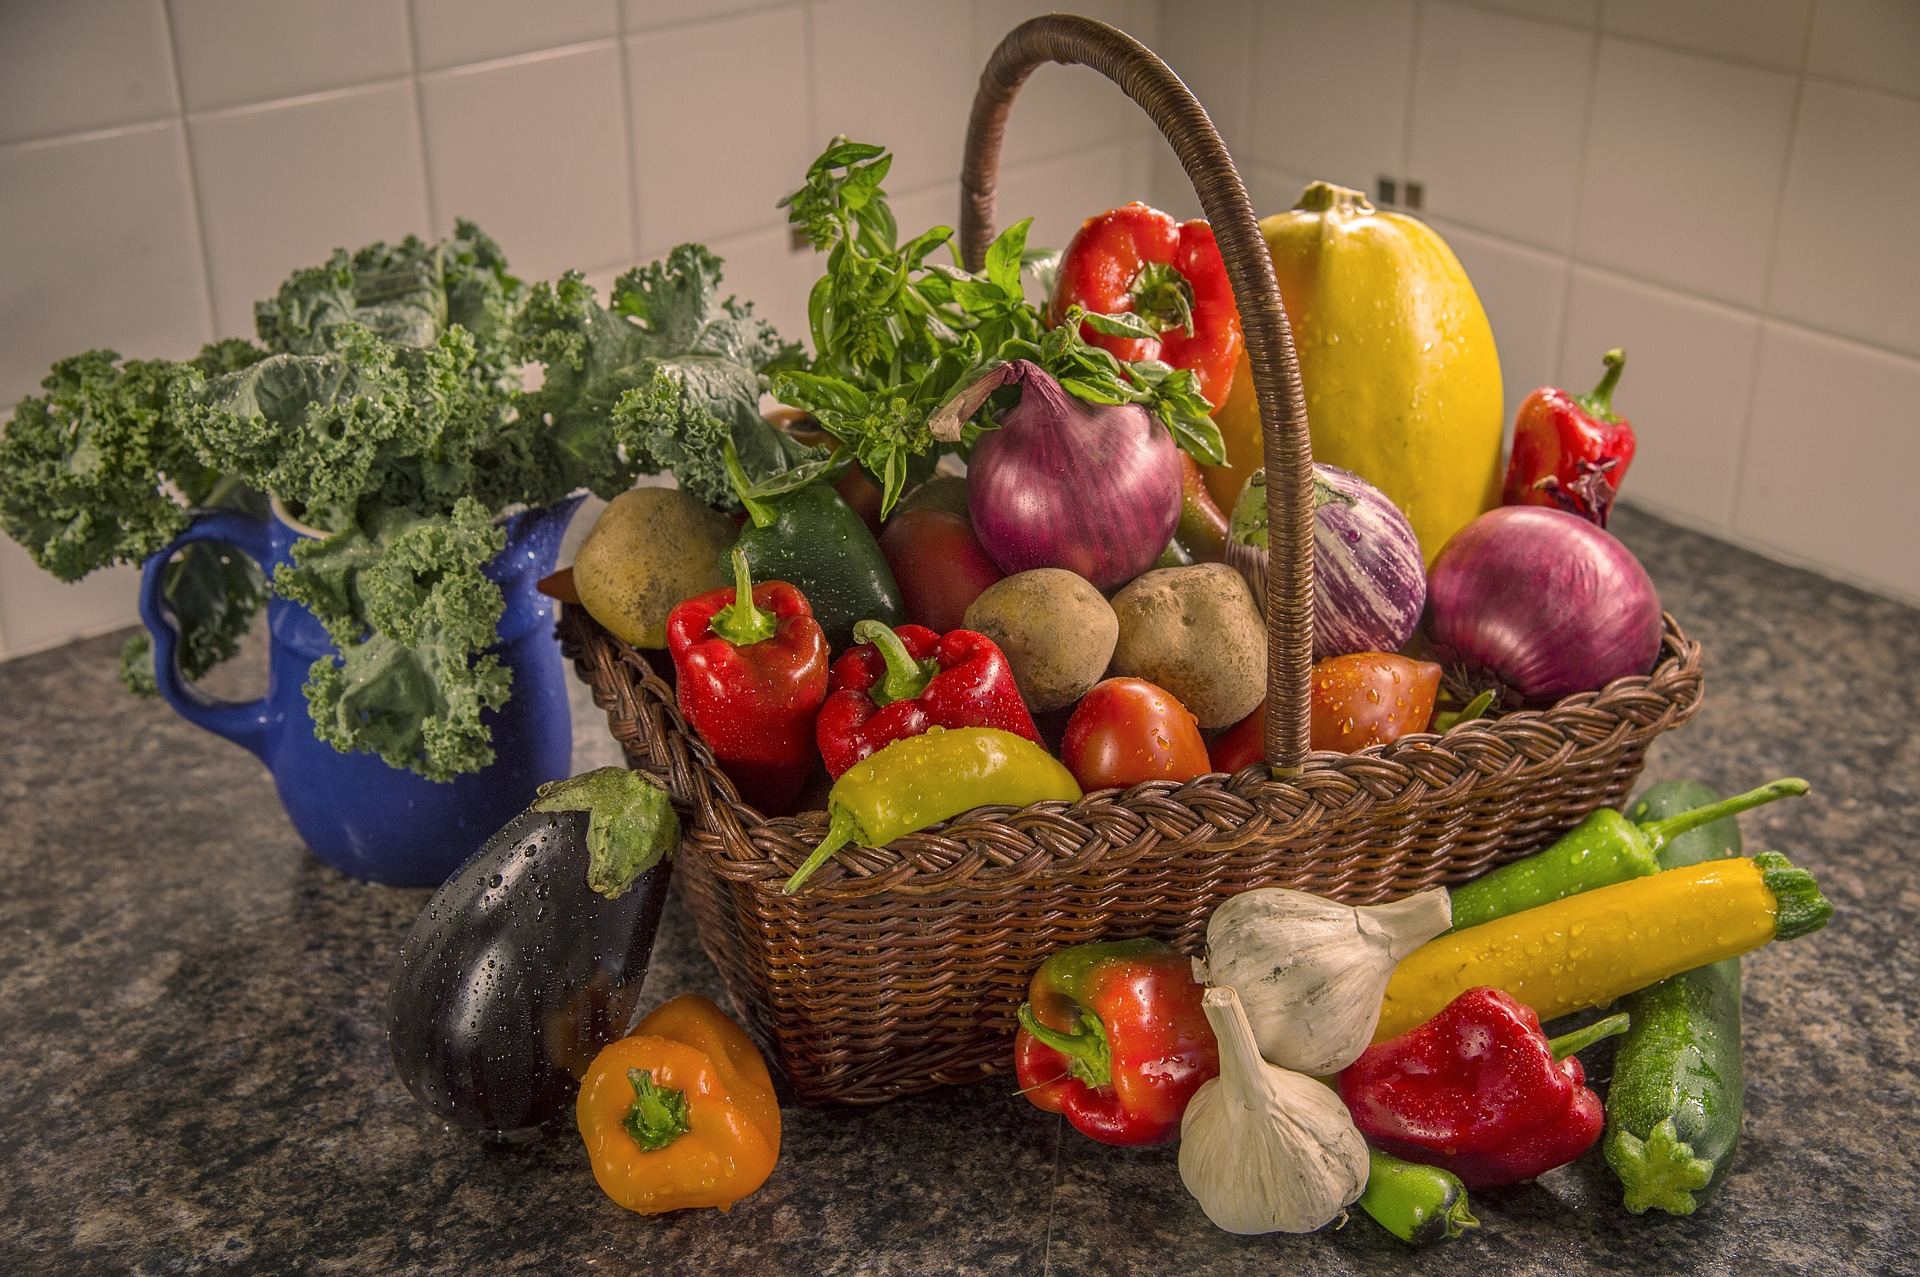 A basket of brightly coloured fresh fruit and vegetables